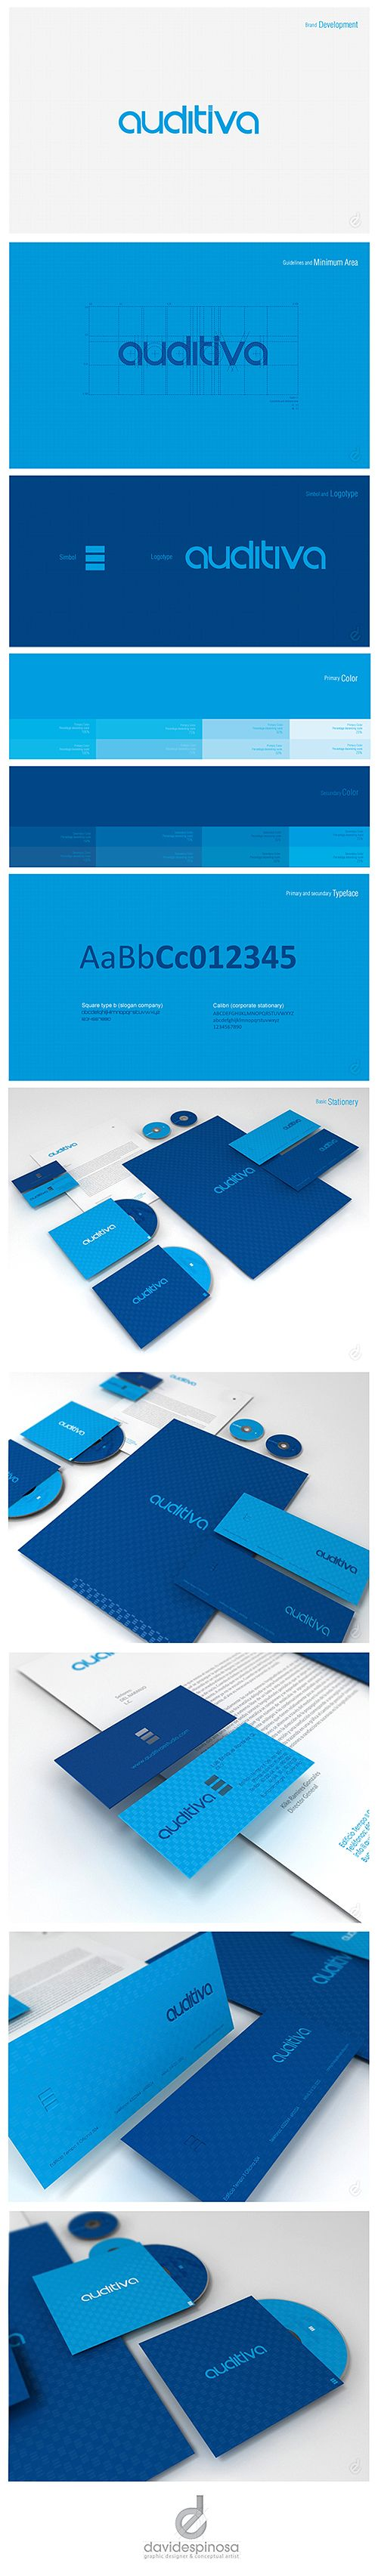 Brand Development AUDITIVA  by David Espinosa, via Behance